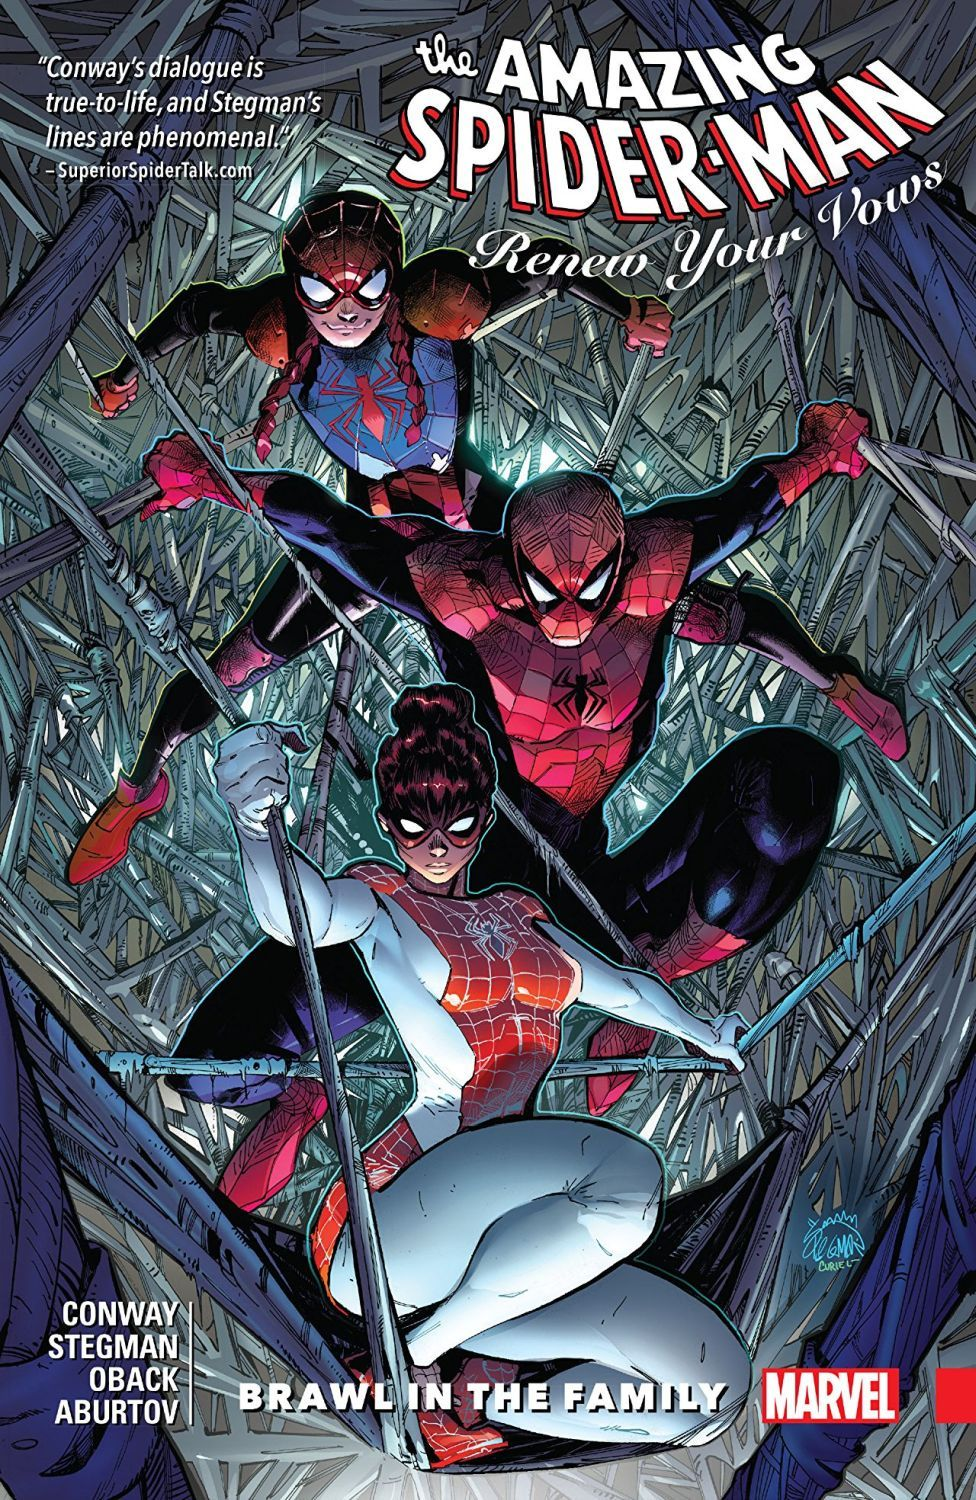 Amazing Spider-Man Renew Your Vows Vol. 1 Brawl in the Family - 1